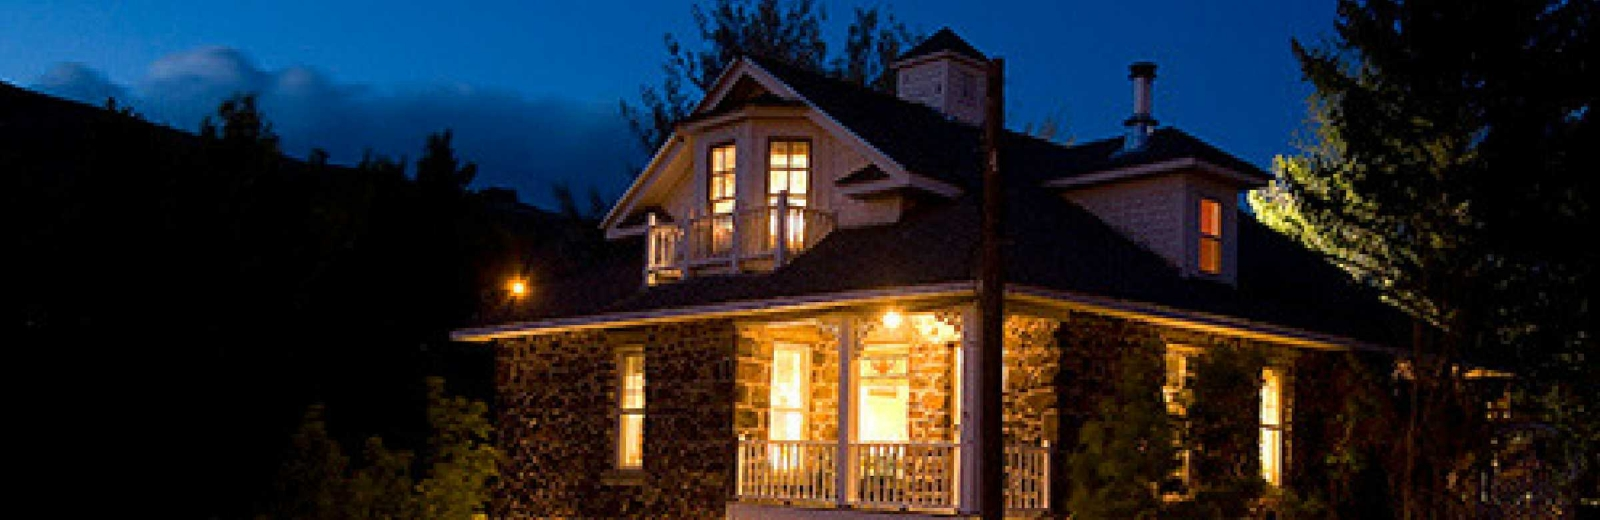 Yellowstone Suites Bed and Breakfast